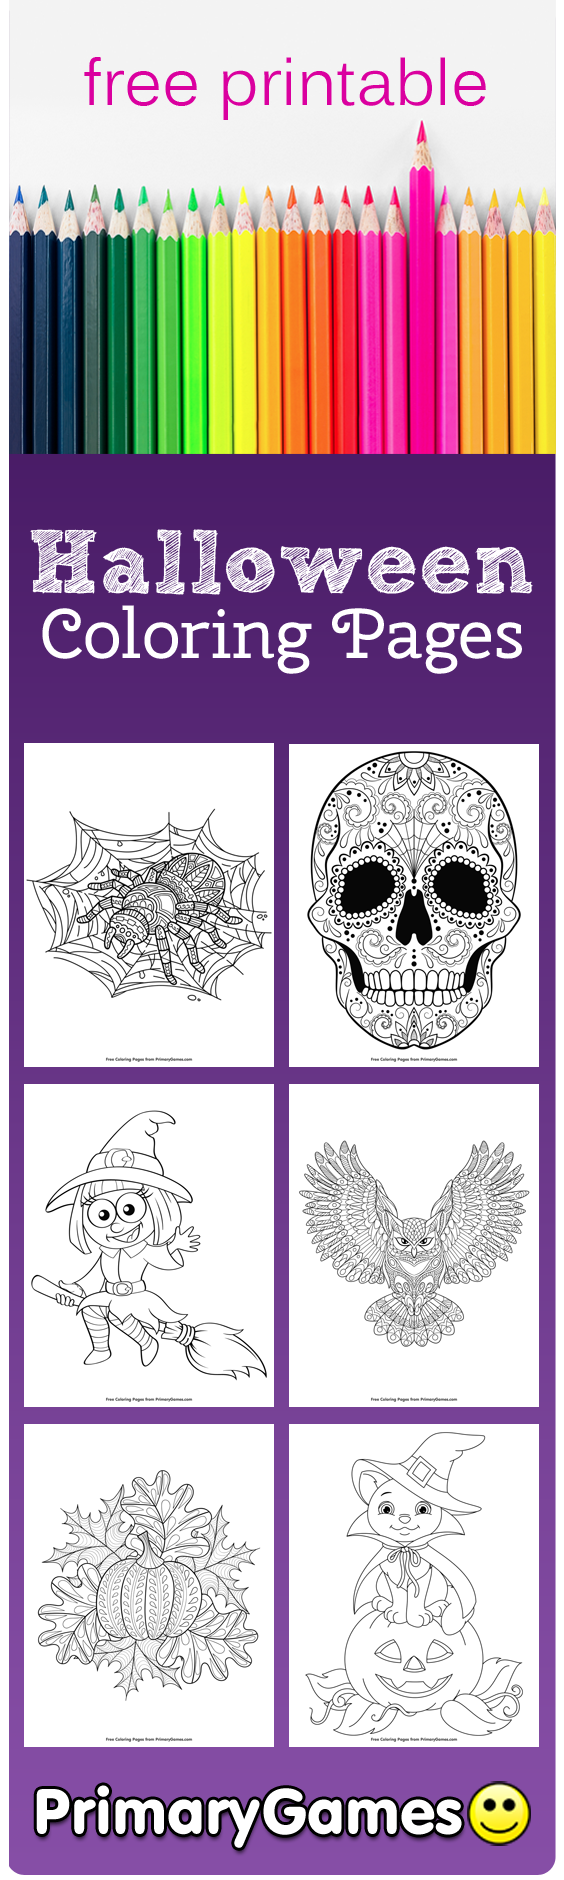 online games at primarygamescom - Halloween Coloring Online